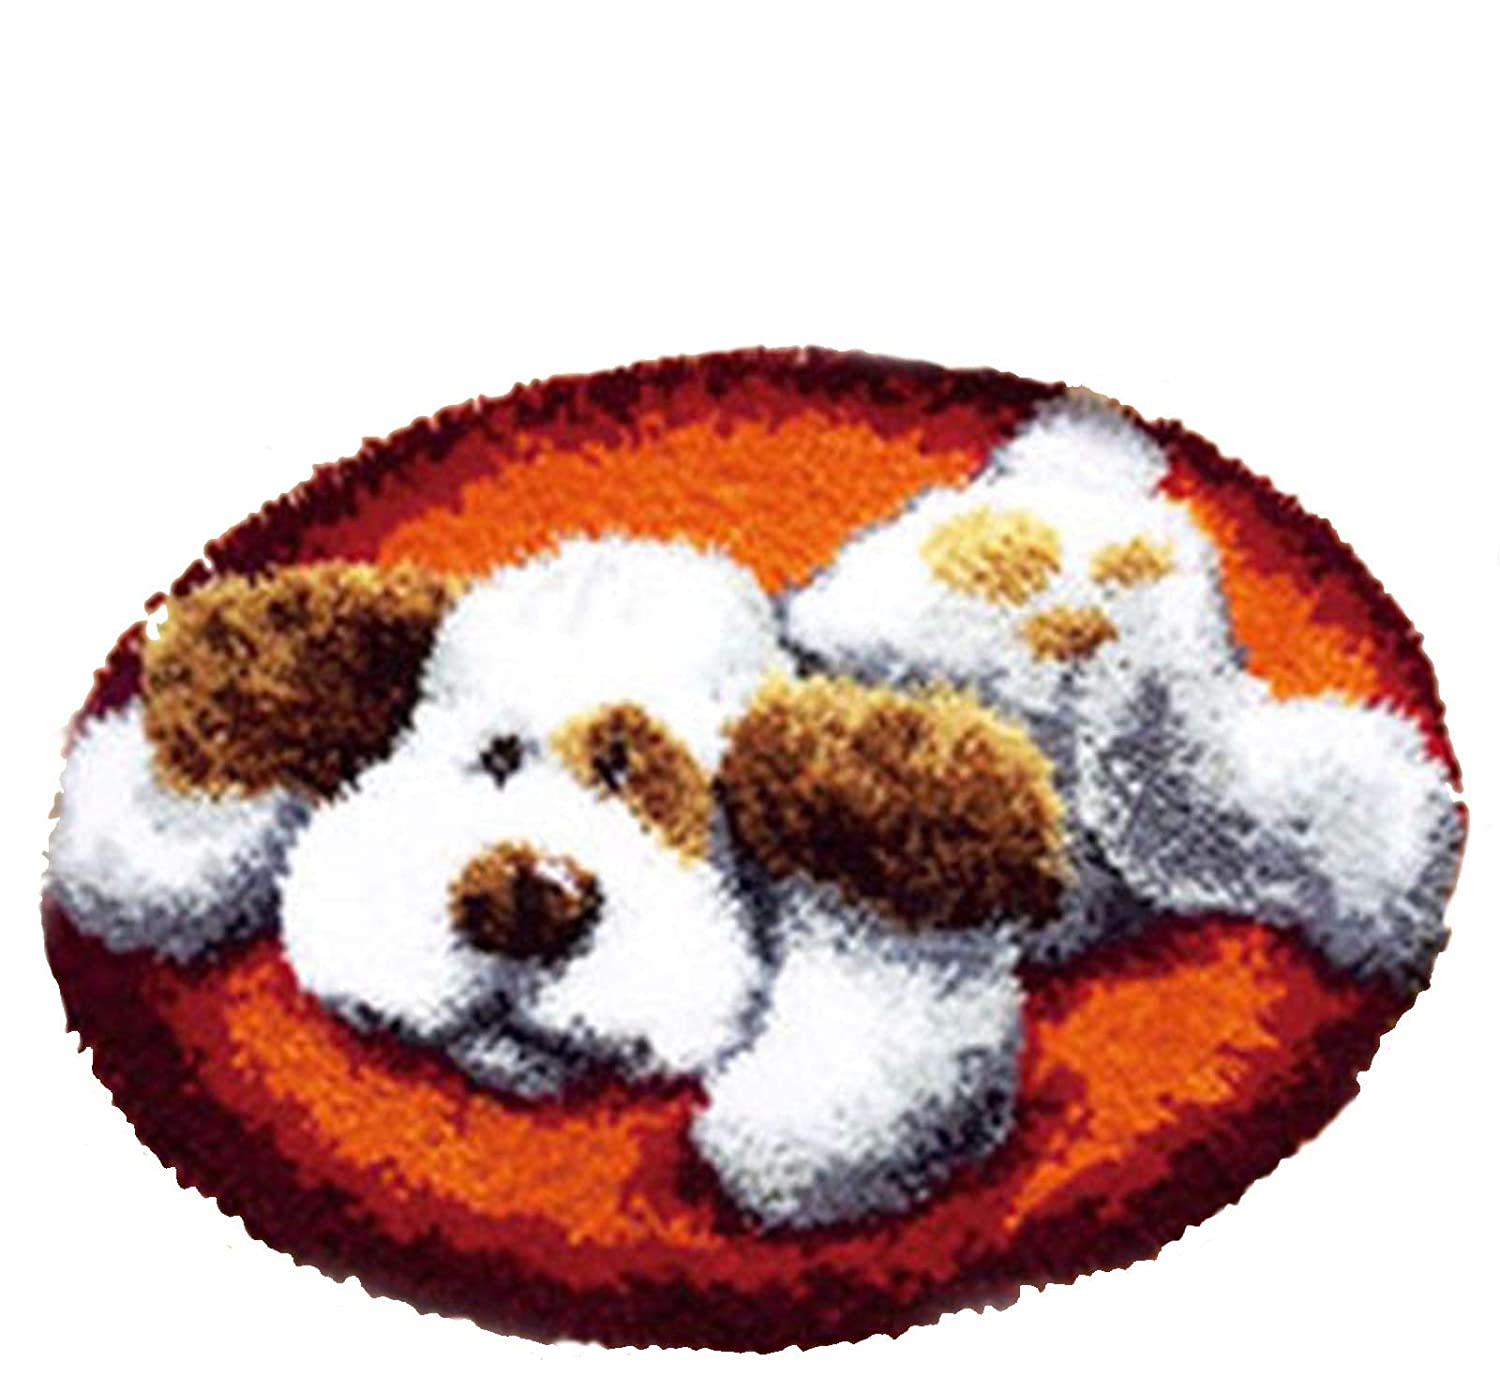 15 Model Dog Latch Hook Kit Rug Dog010 20 by 15 Inch (1 pack) BYT Collections Rug010